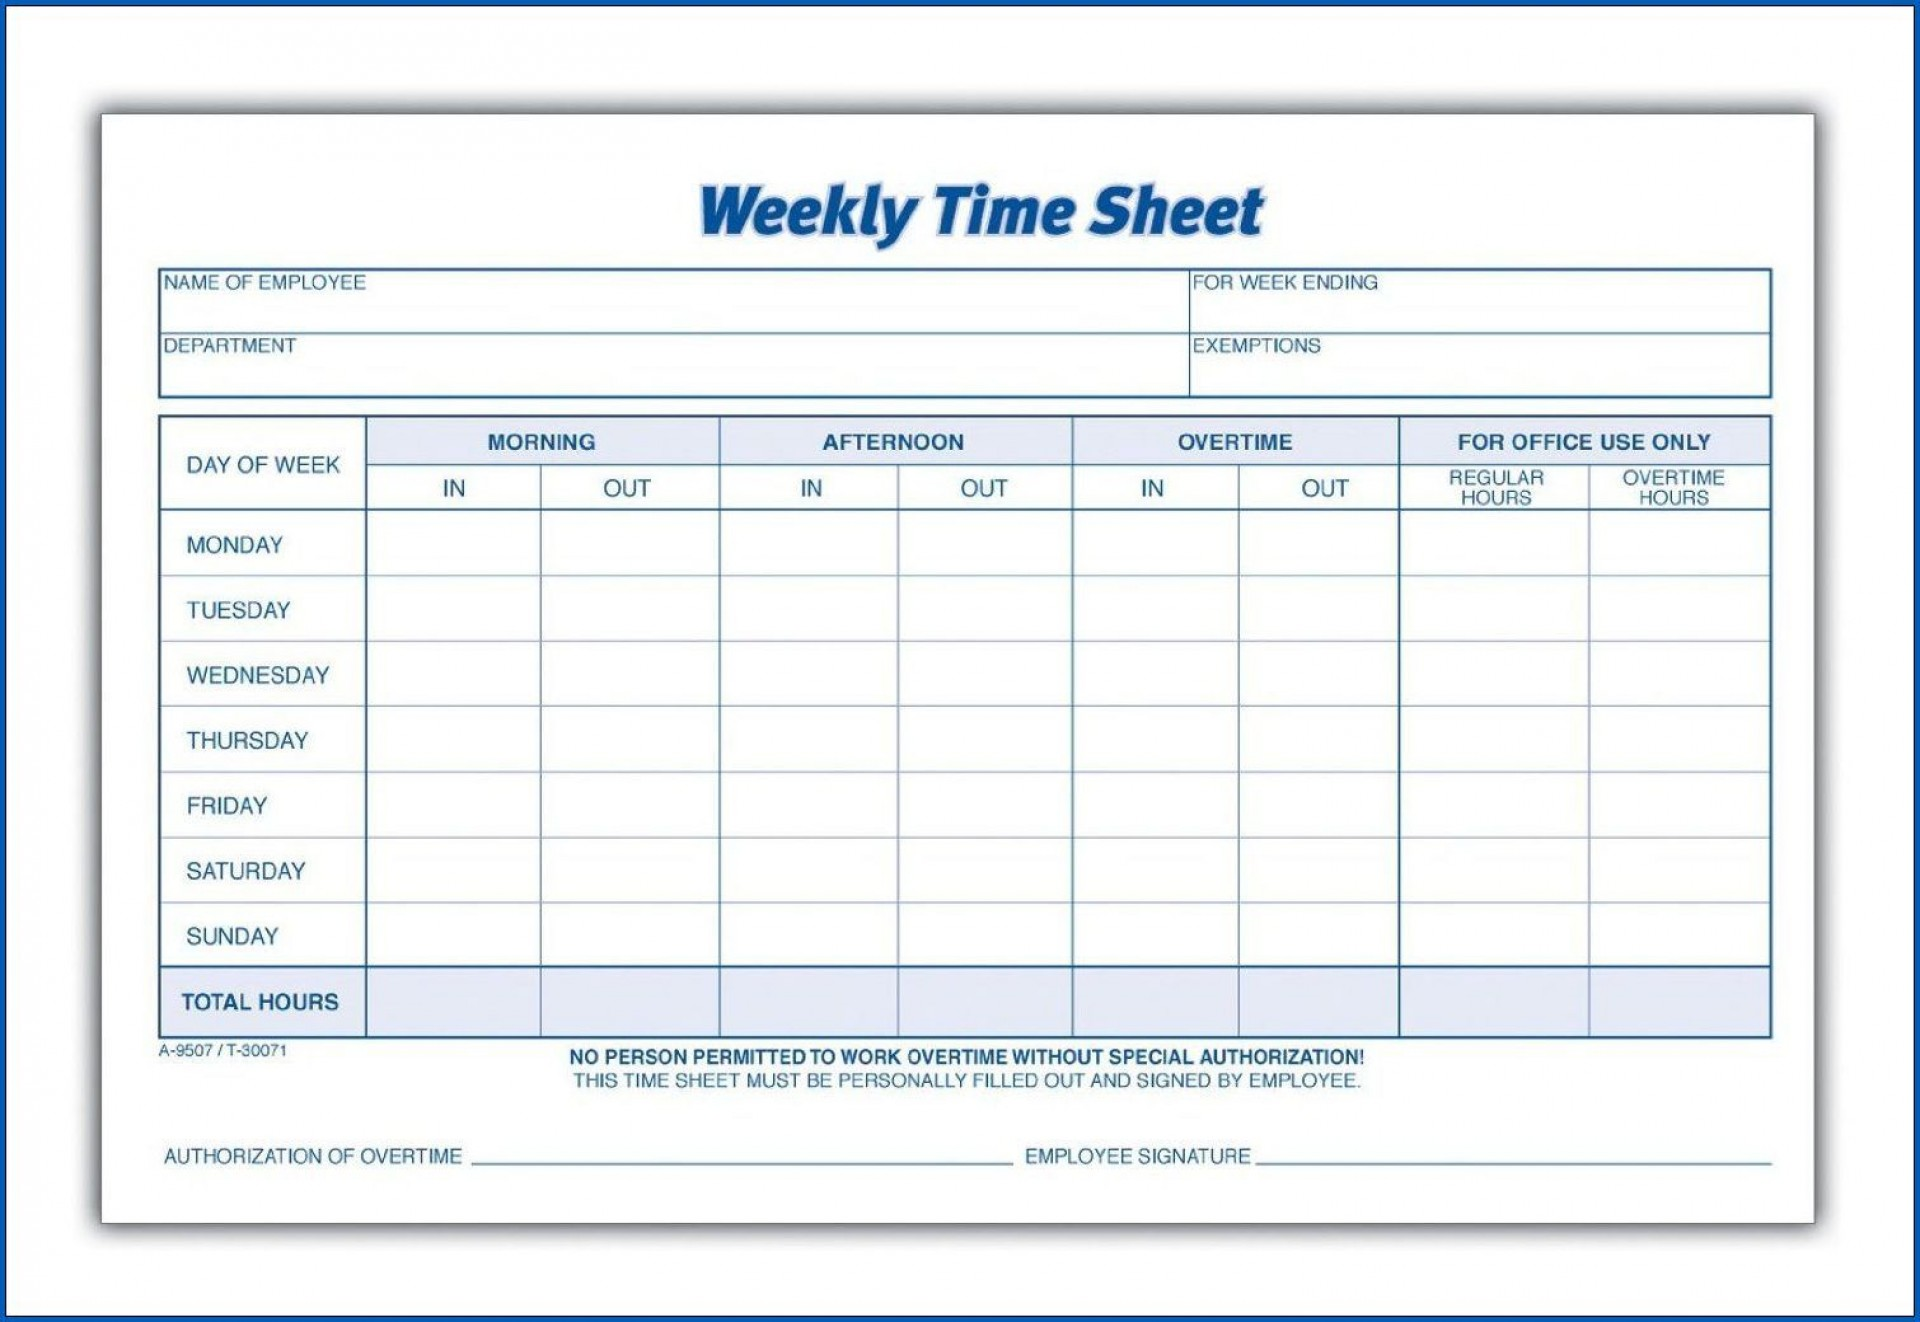 003 Archaicawful Weekly Timesheet Template Excel Photo  Simple Free1920